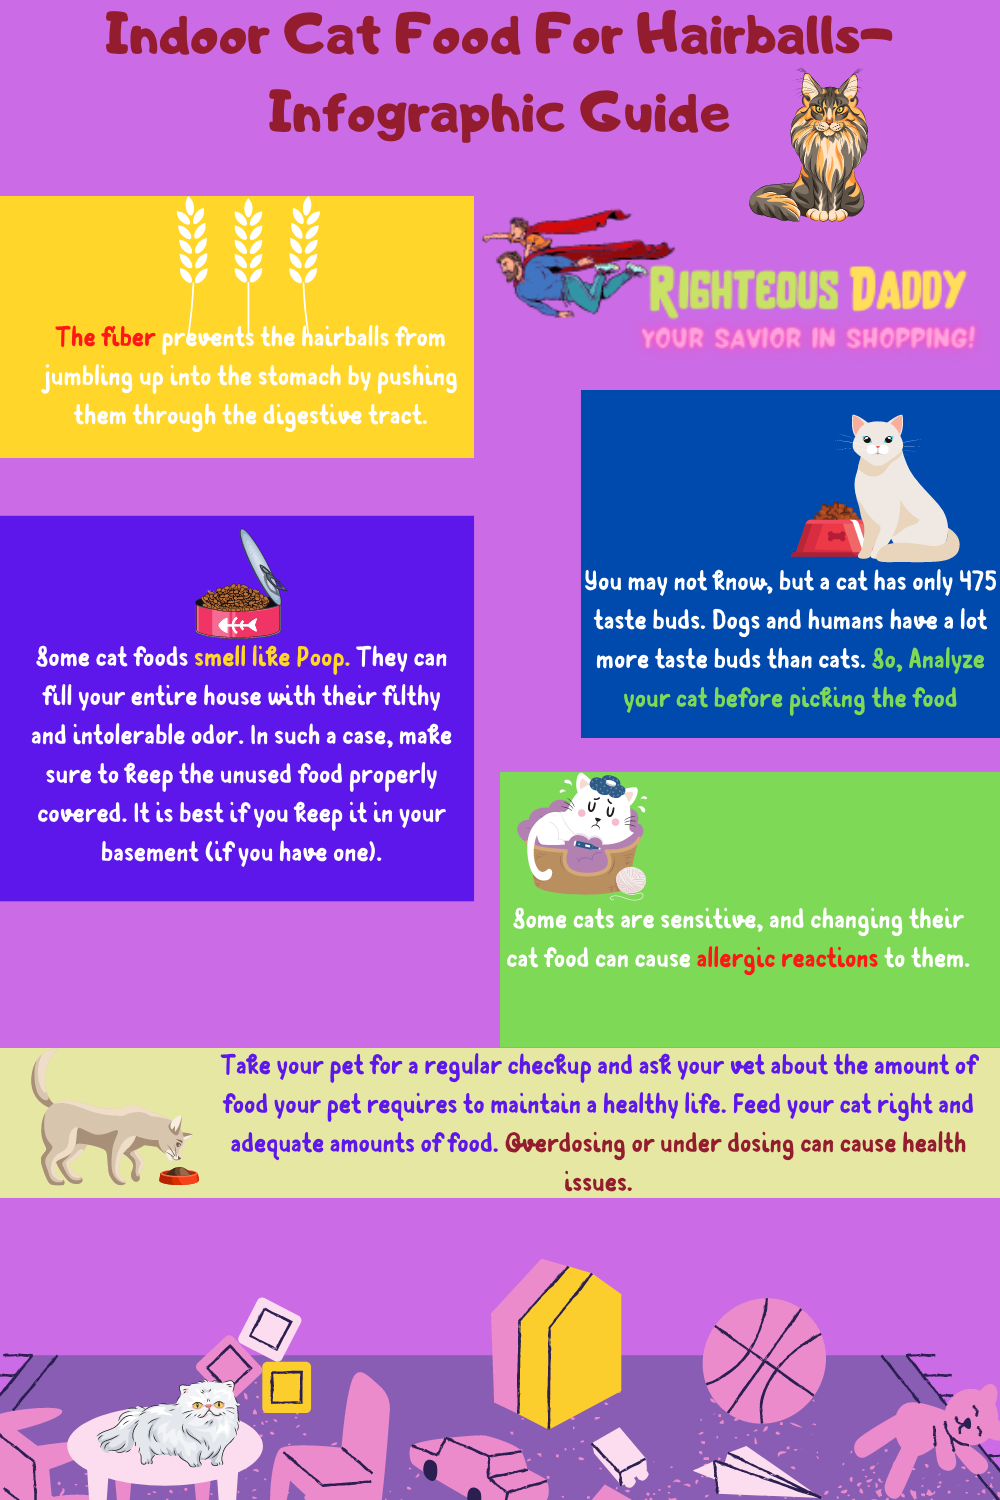 best indoor cat food for hairballs issue infographic buyer guide